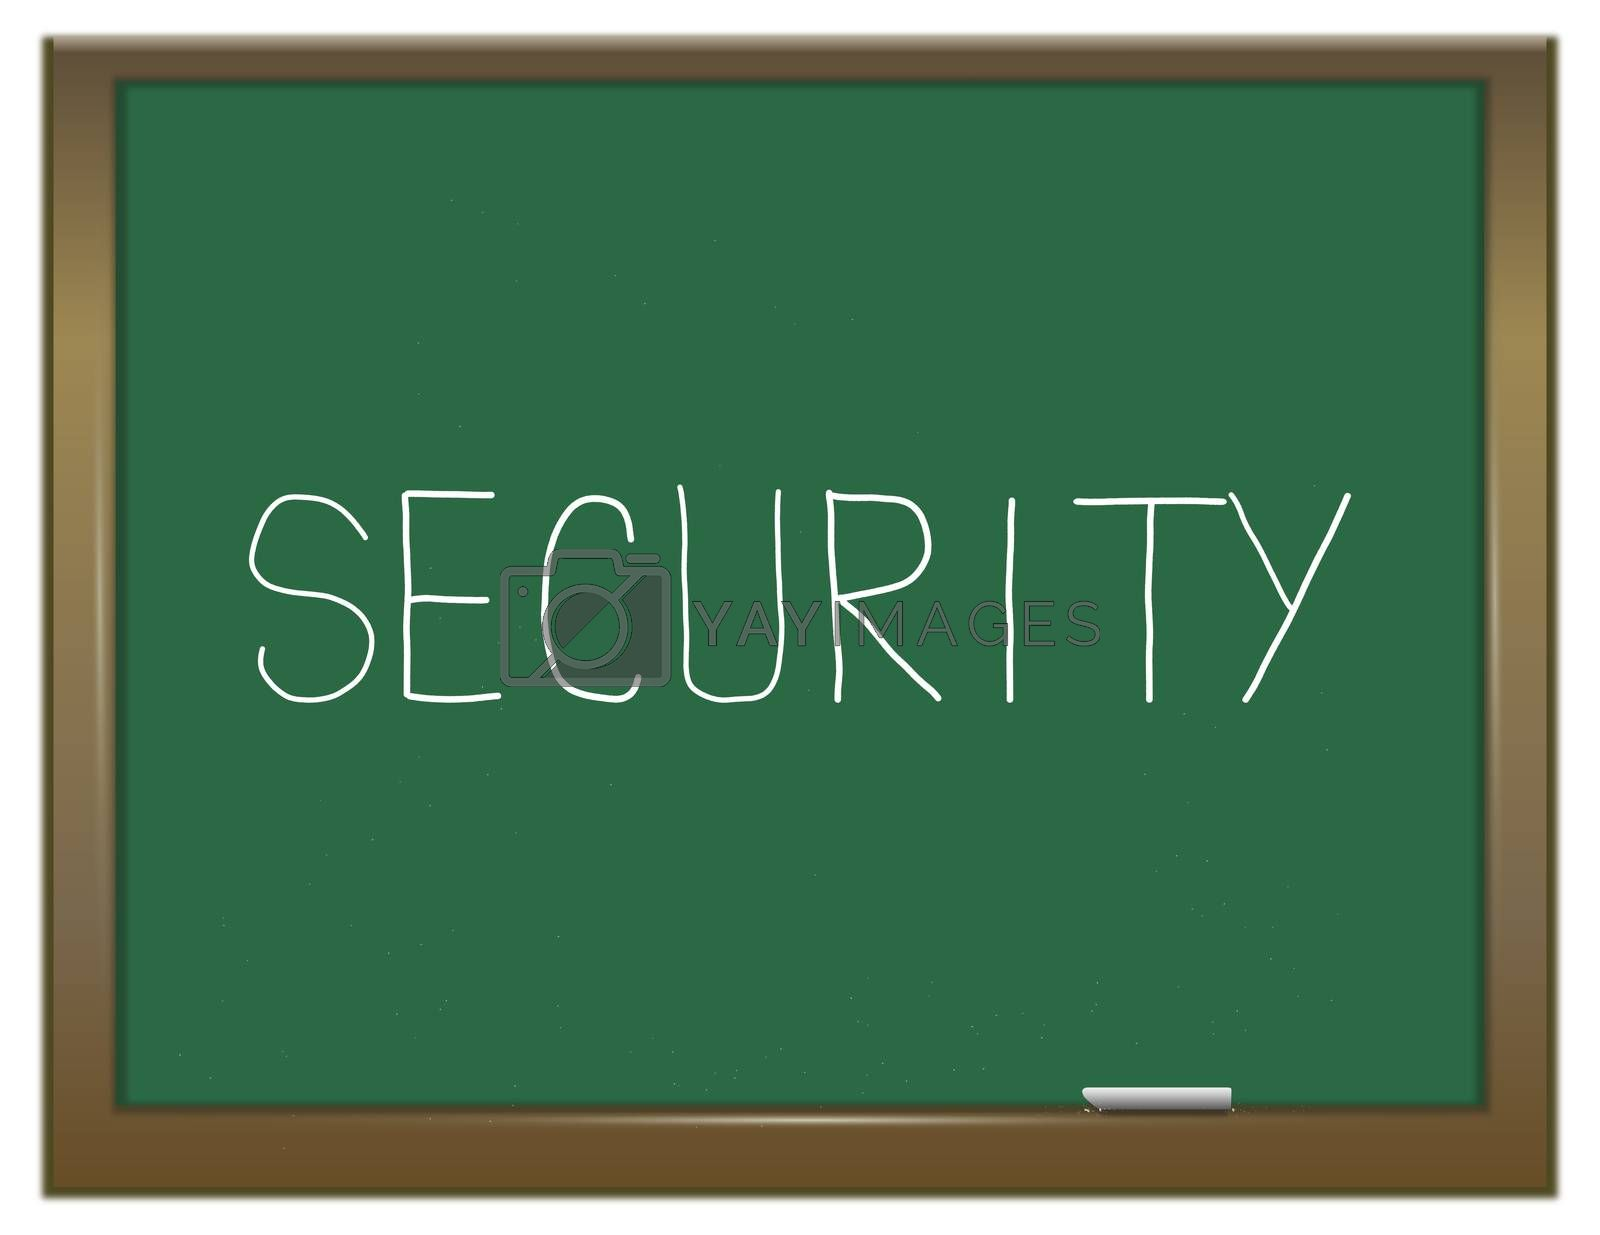 Illustration depicting a green chalkboard with a security concept.